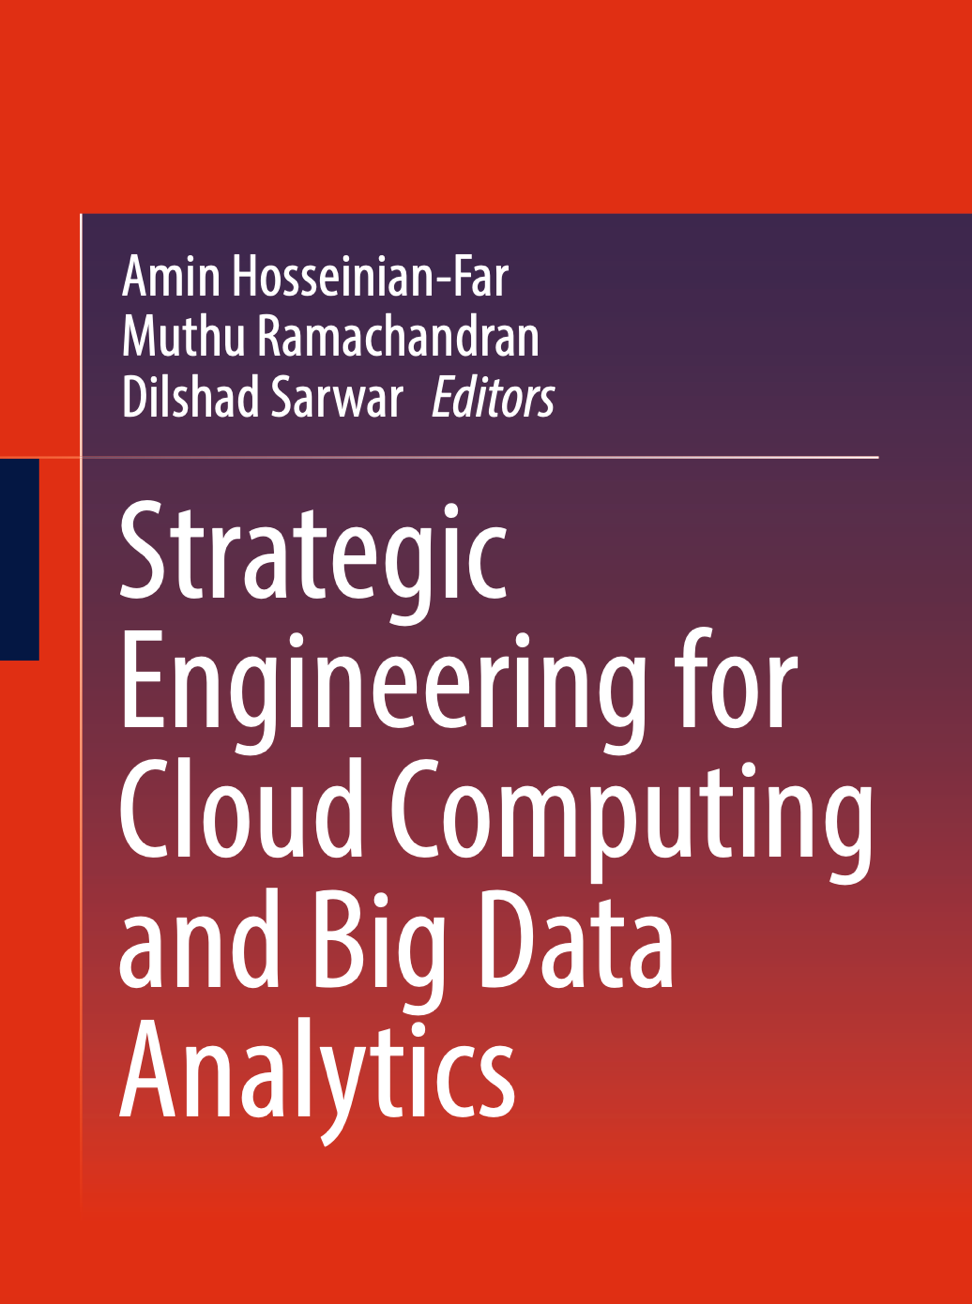 Strategic Engineering for Cloud Computing and Big Data Analytics at Social-Media.press